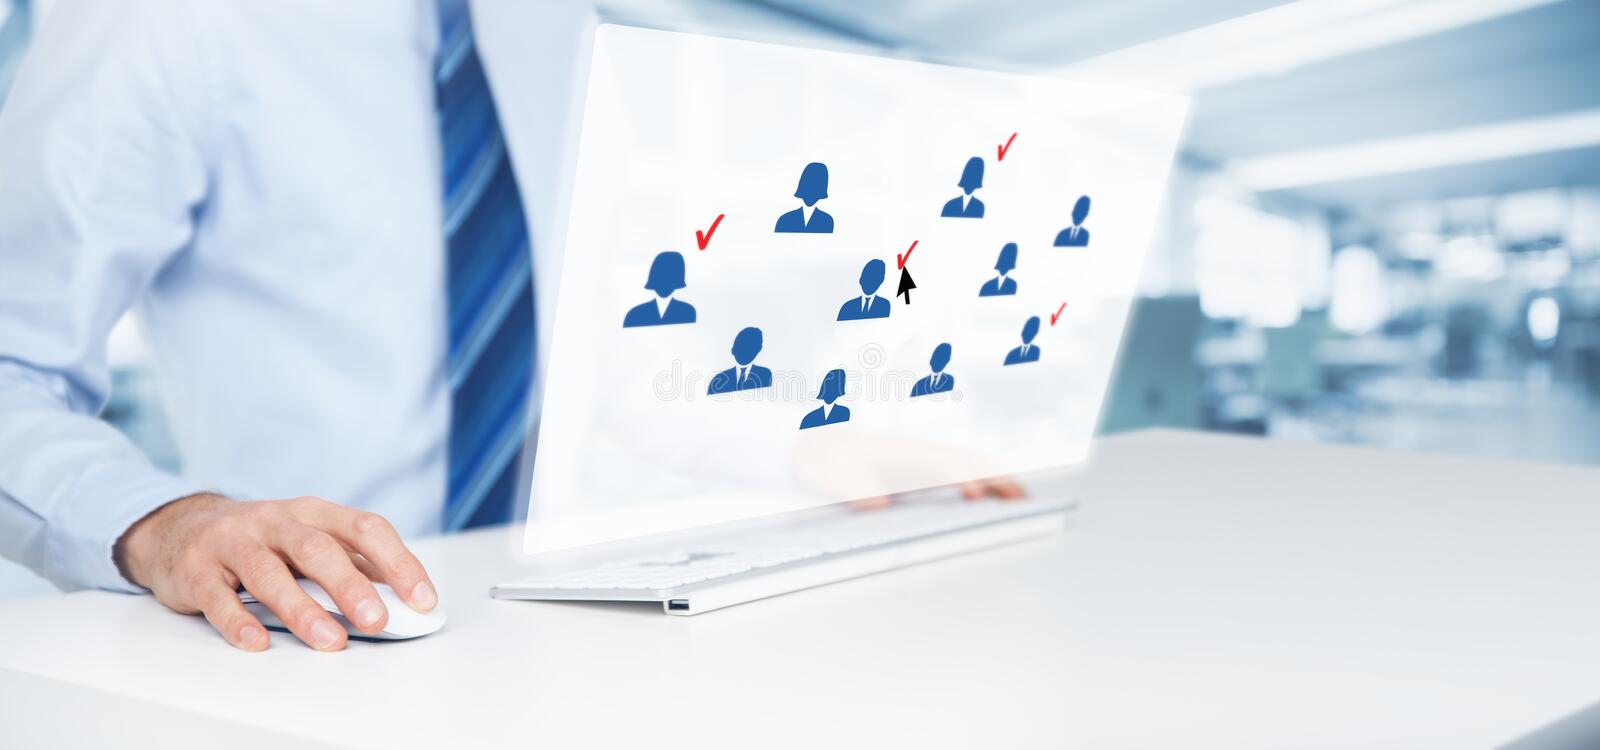 Marketing segmentation. Target audience, customers care, customer relationship management (CRM), human resources and customer analysis concepts. Businessman stock photos